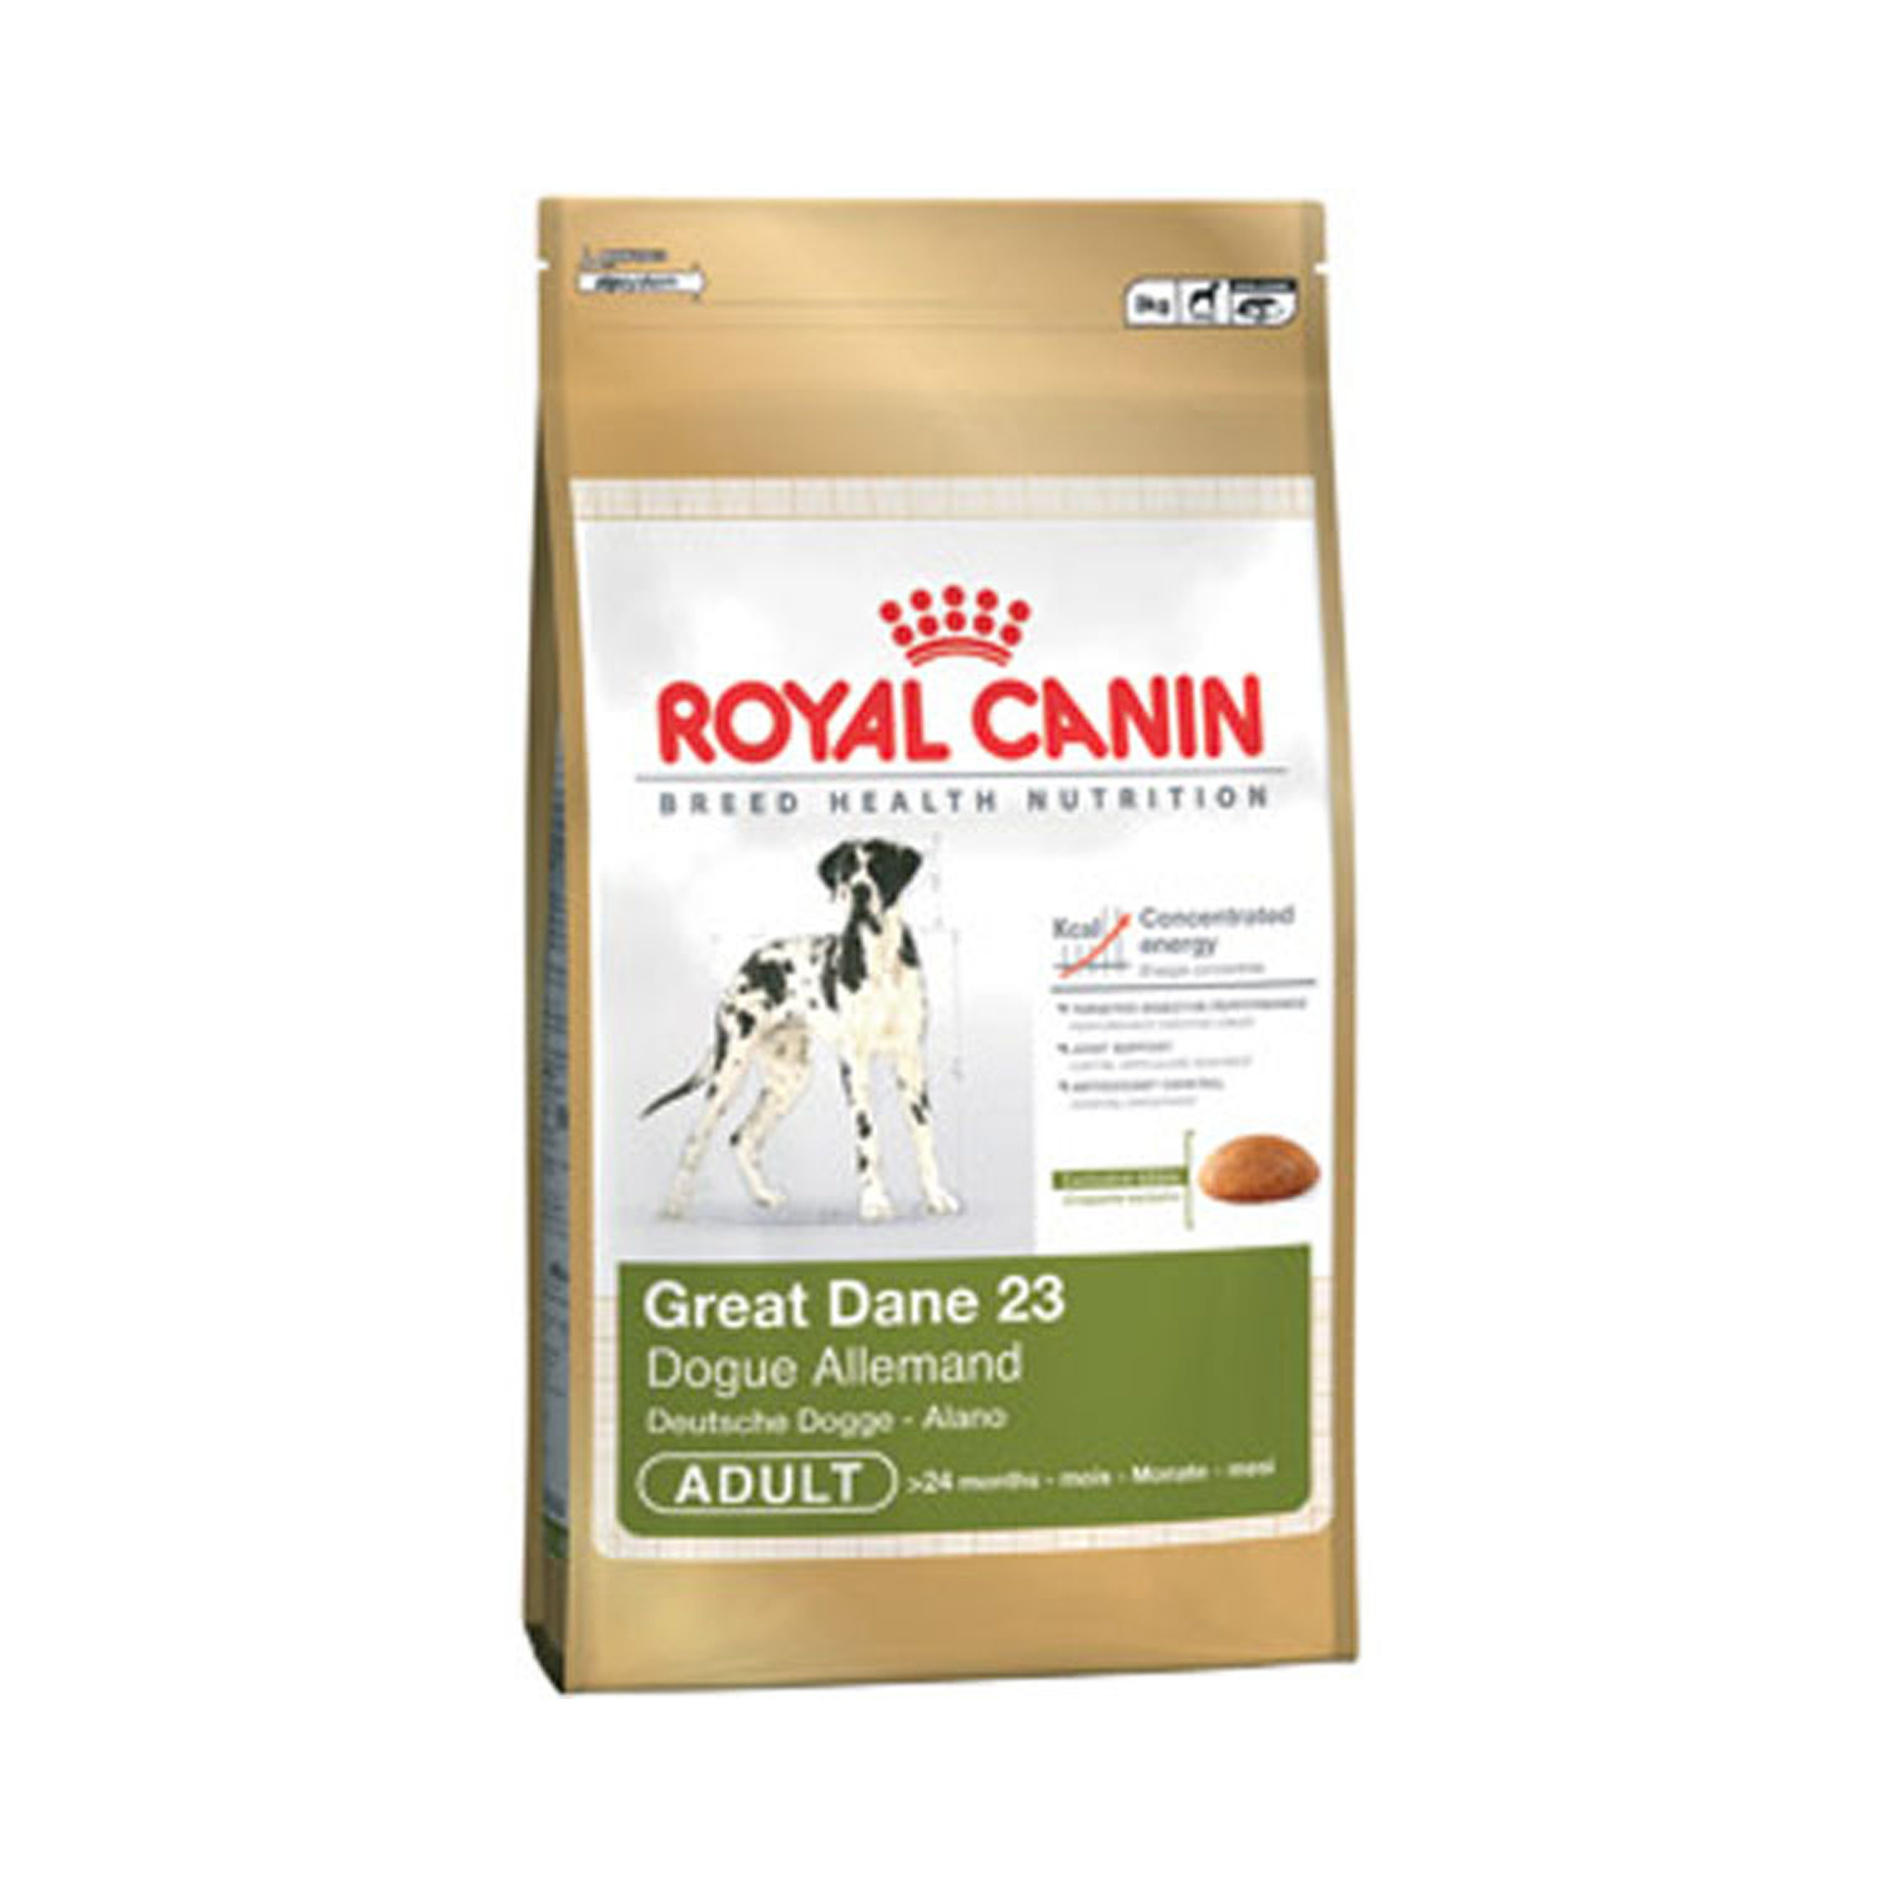 Royal Canin Breed Health Nutrition Great Dane 23